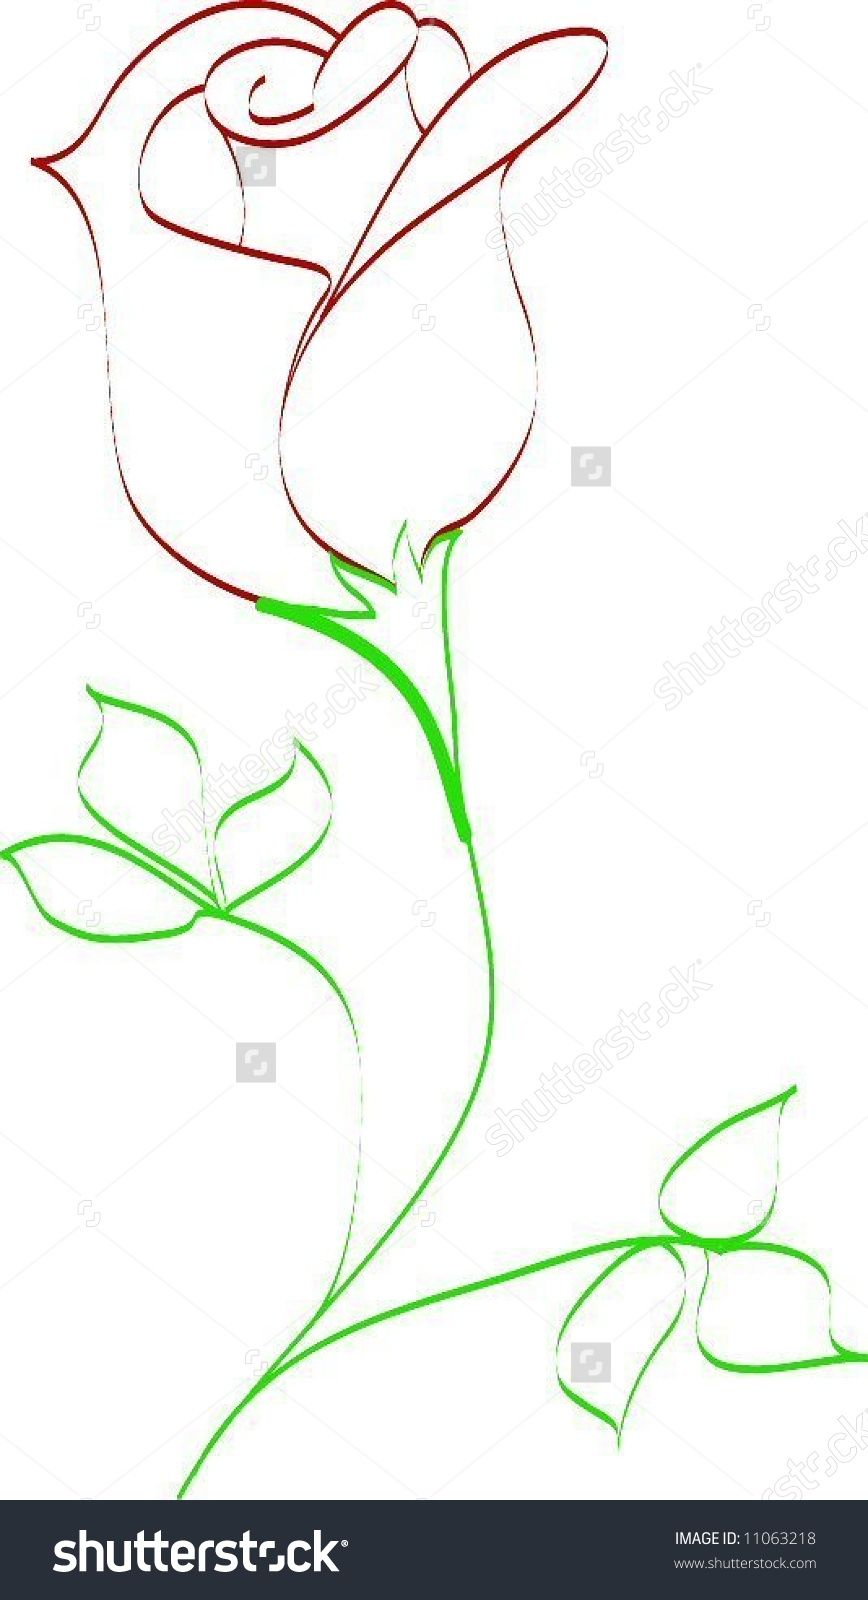 Simple Line Drawing Of Rose Bud Stock Vector Illustration